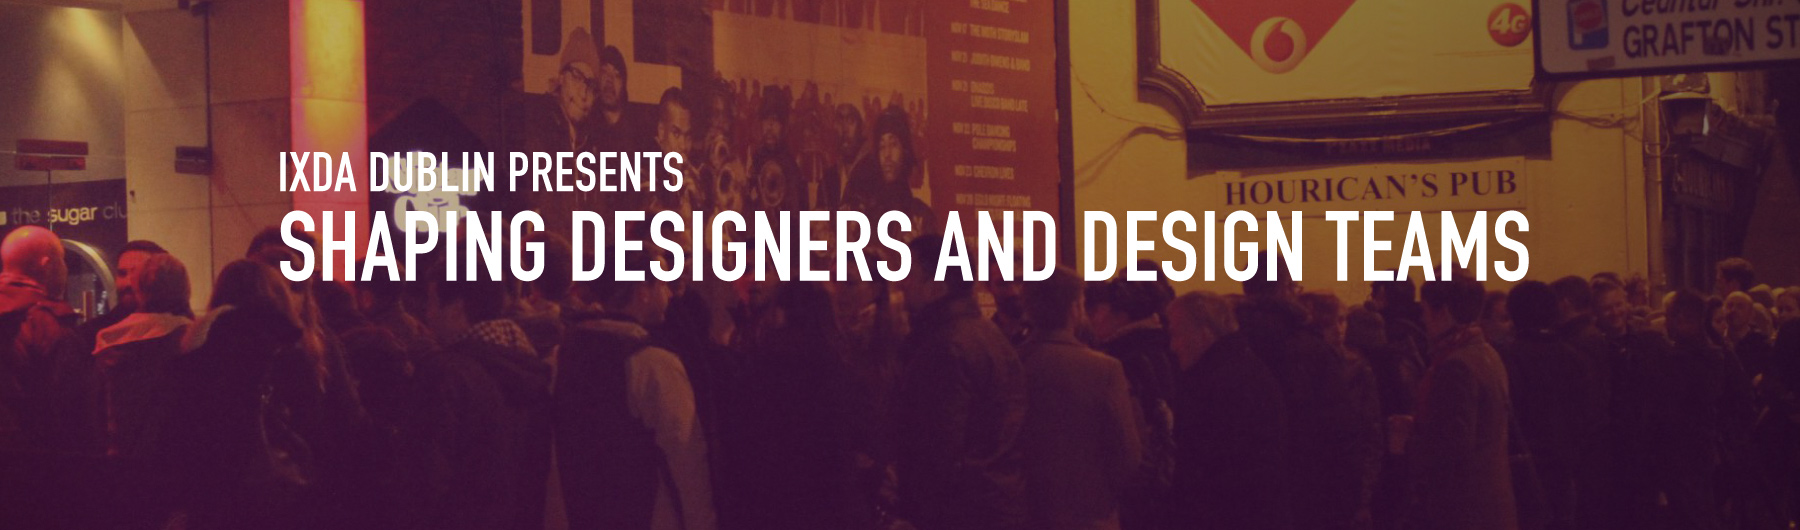 Shaping Designers and Design Teams